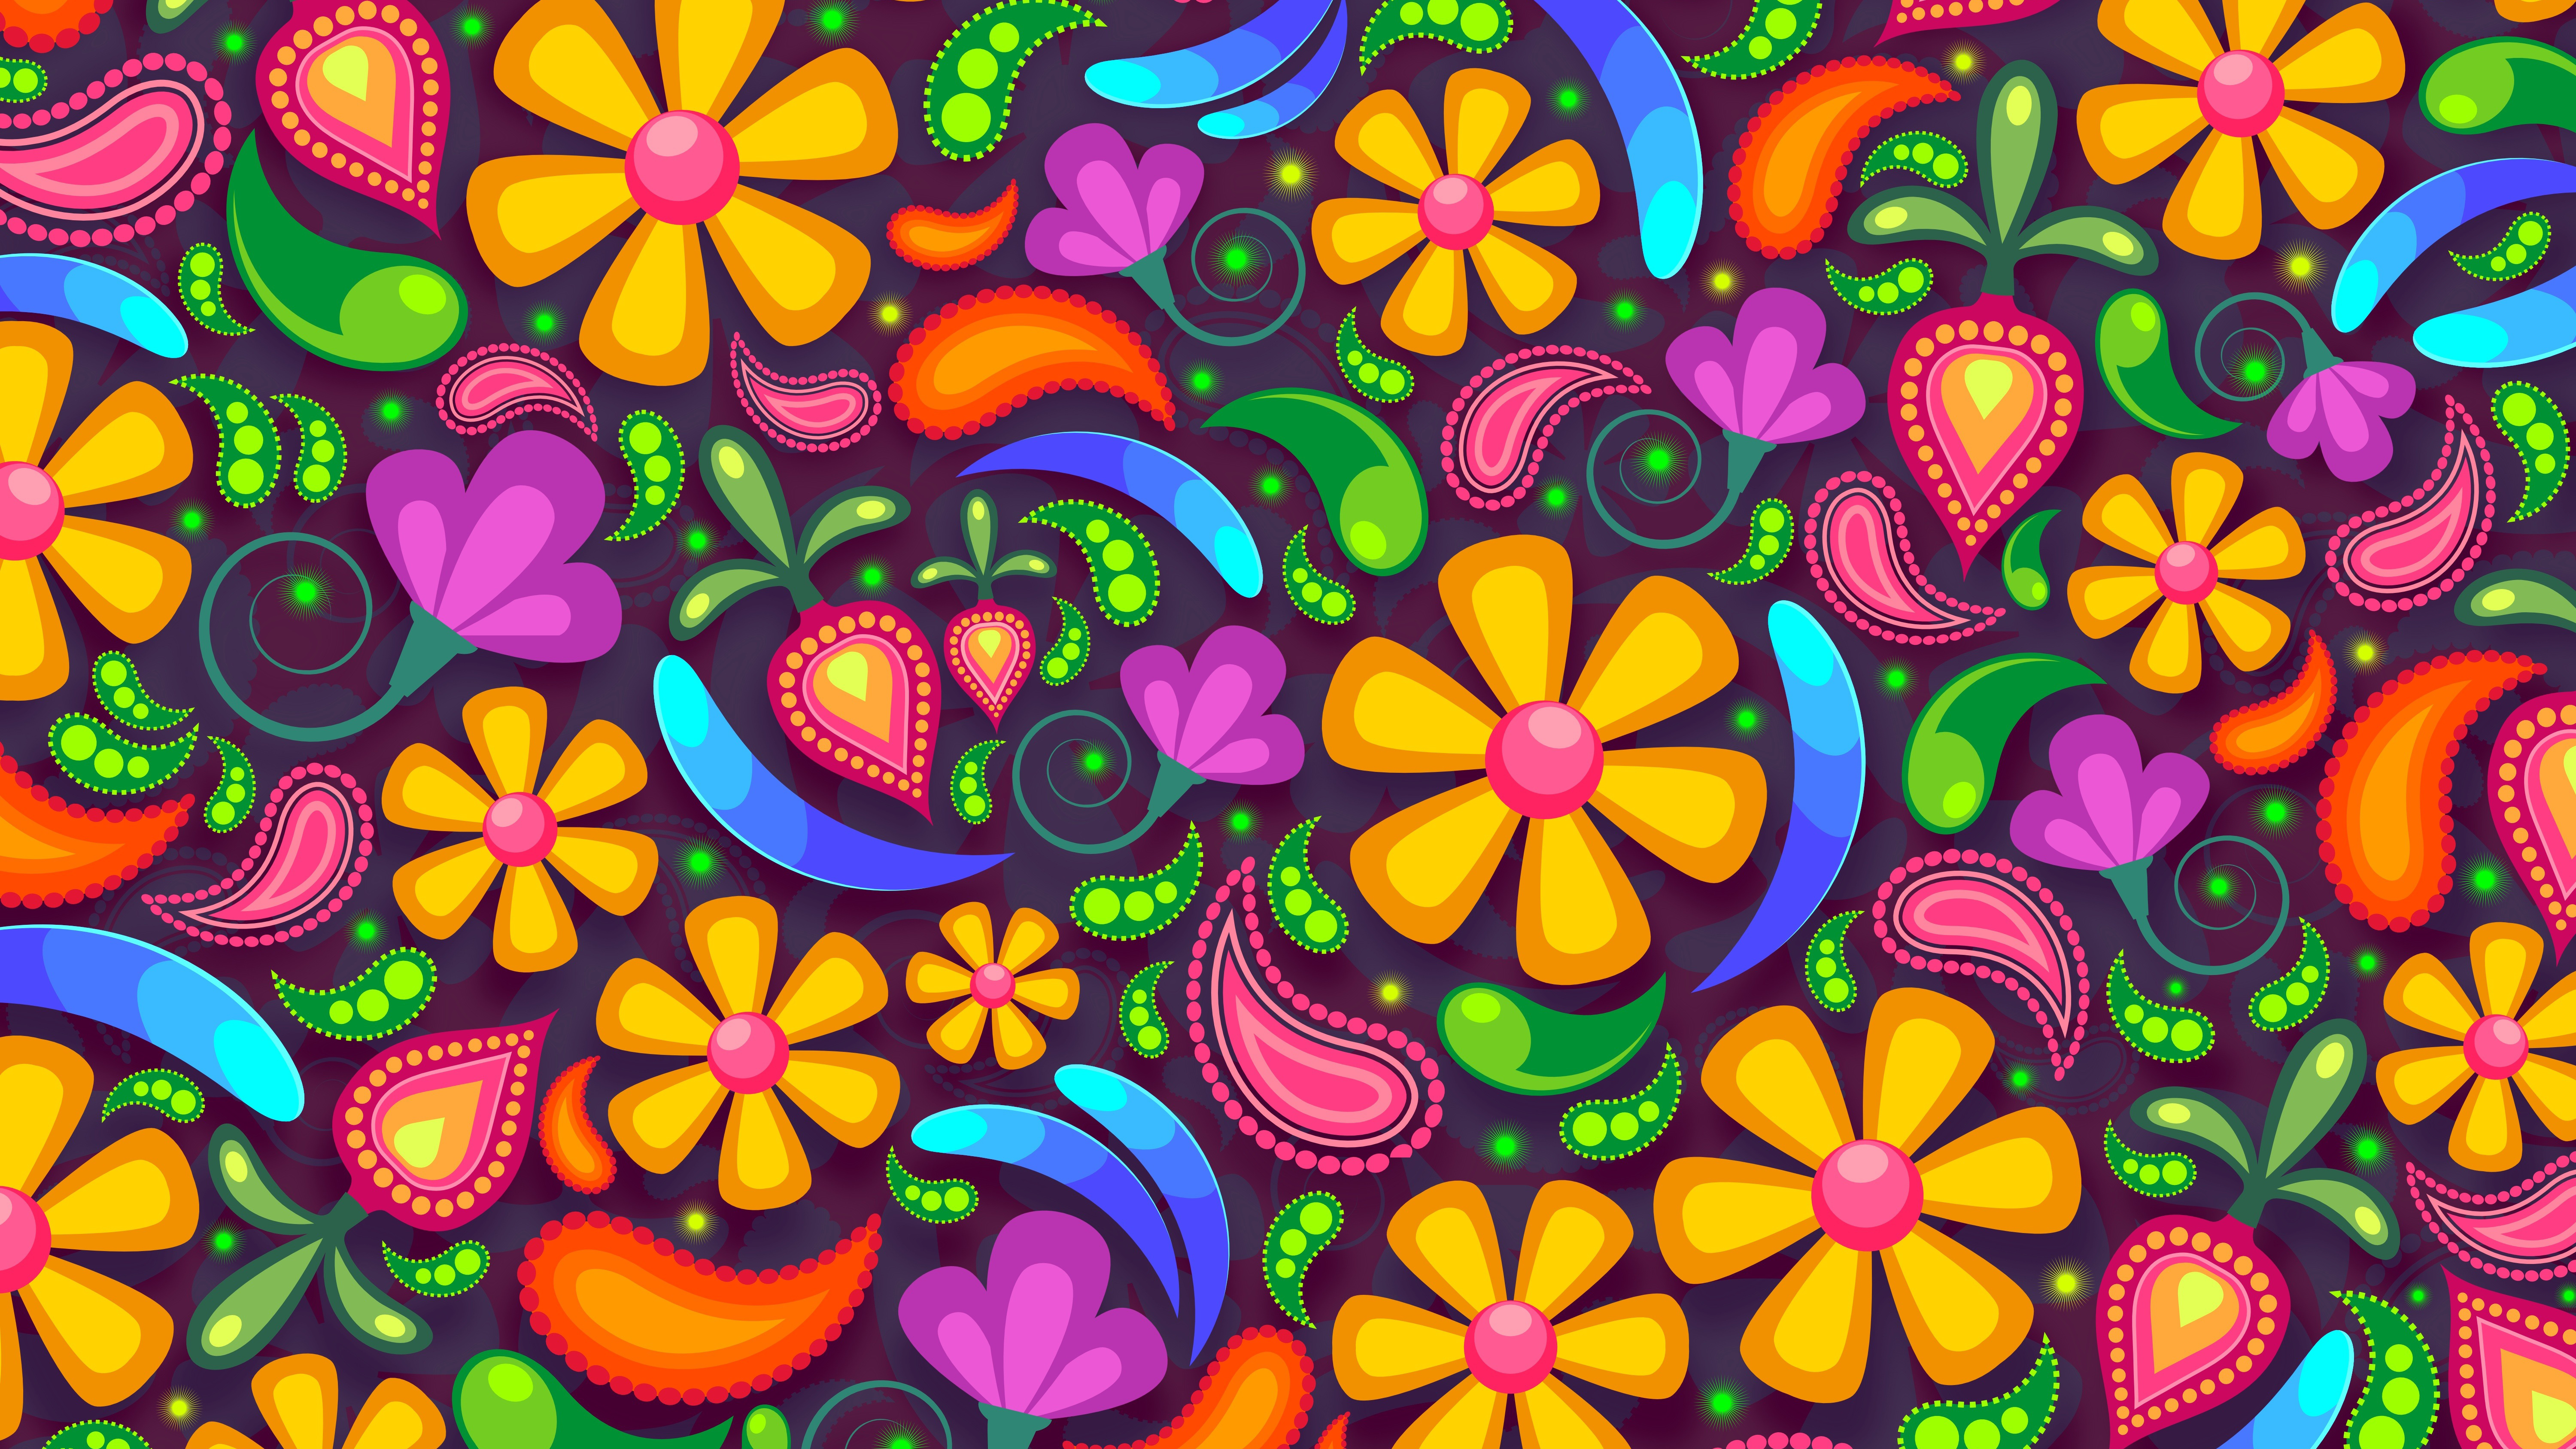 Floral Abstract 5k Wallpapers Hd Wallpapers